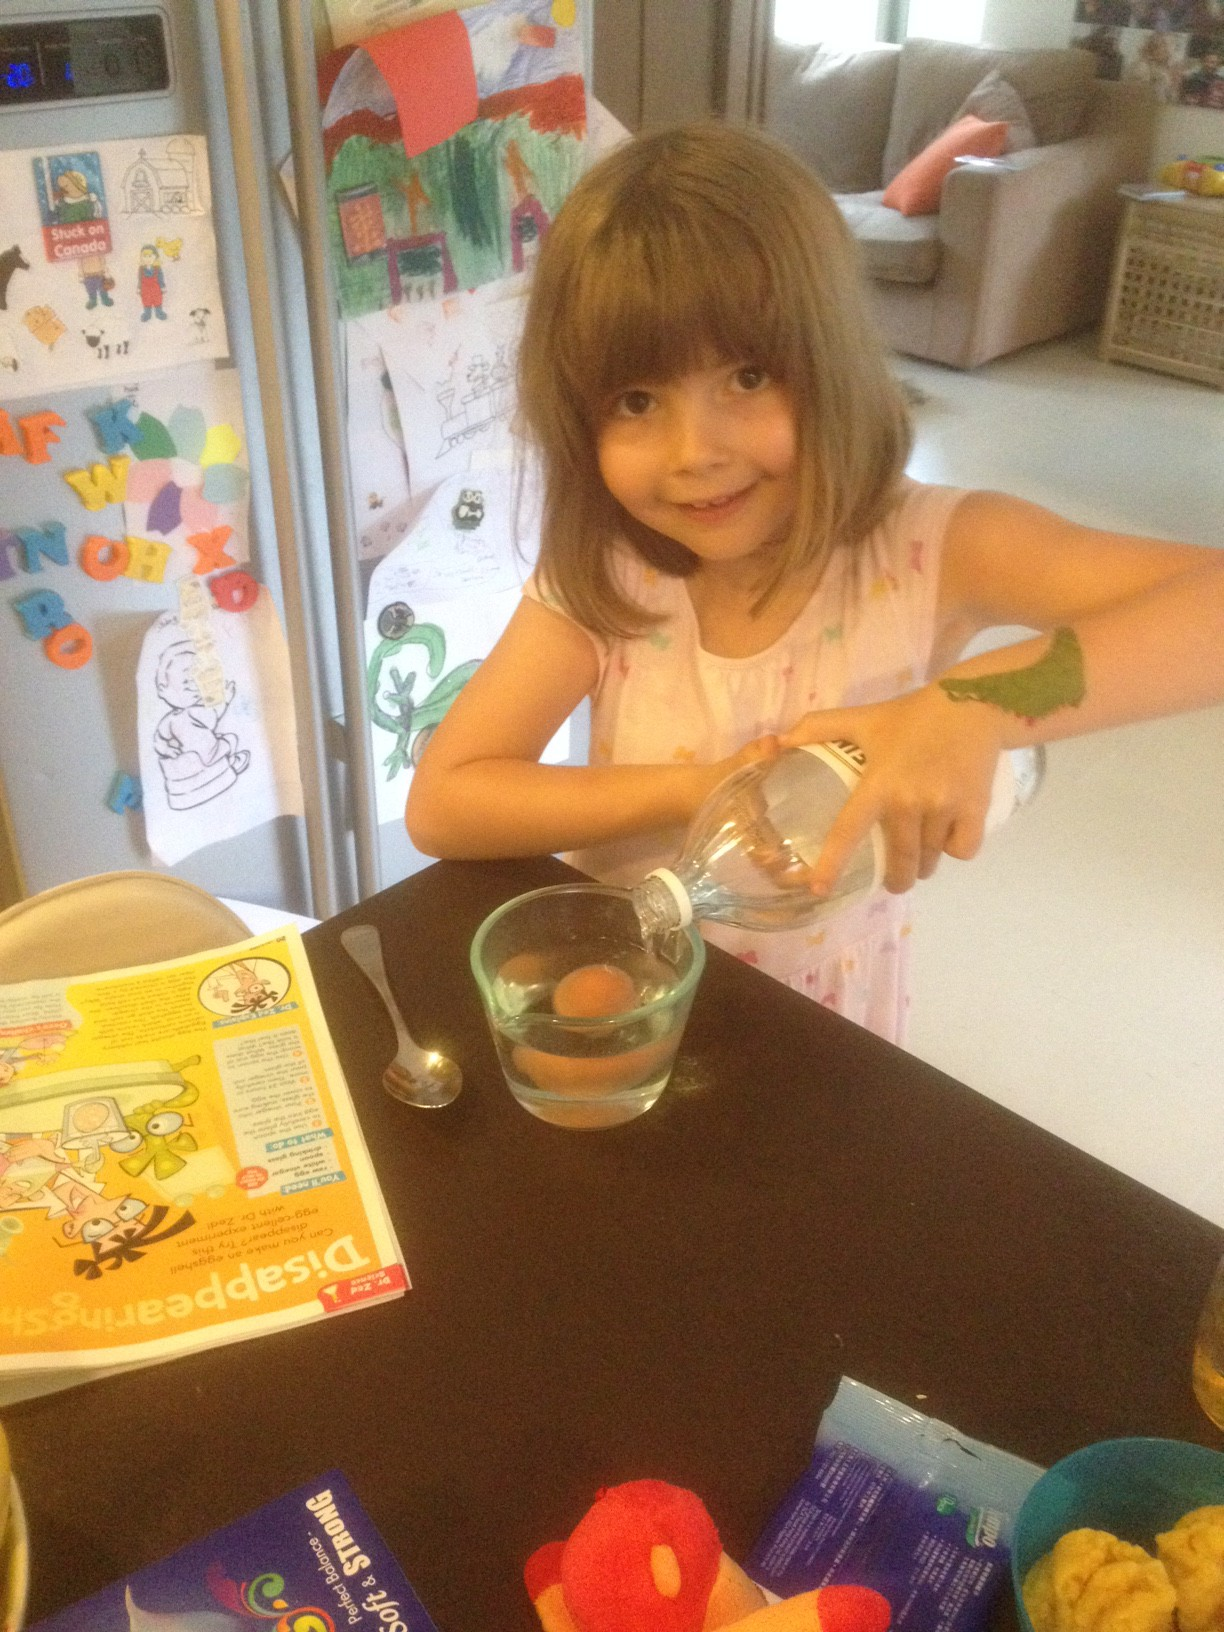 Layla, 6, doing the Disappearing Shell experiment from the April issue.